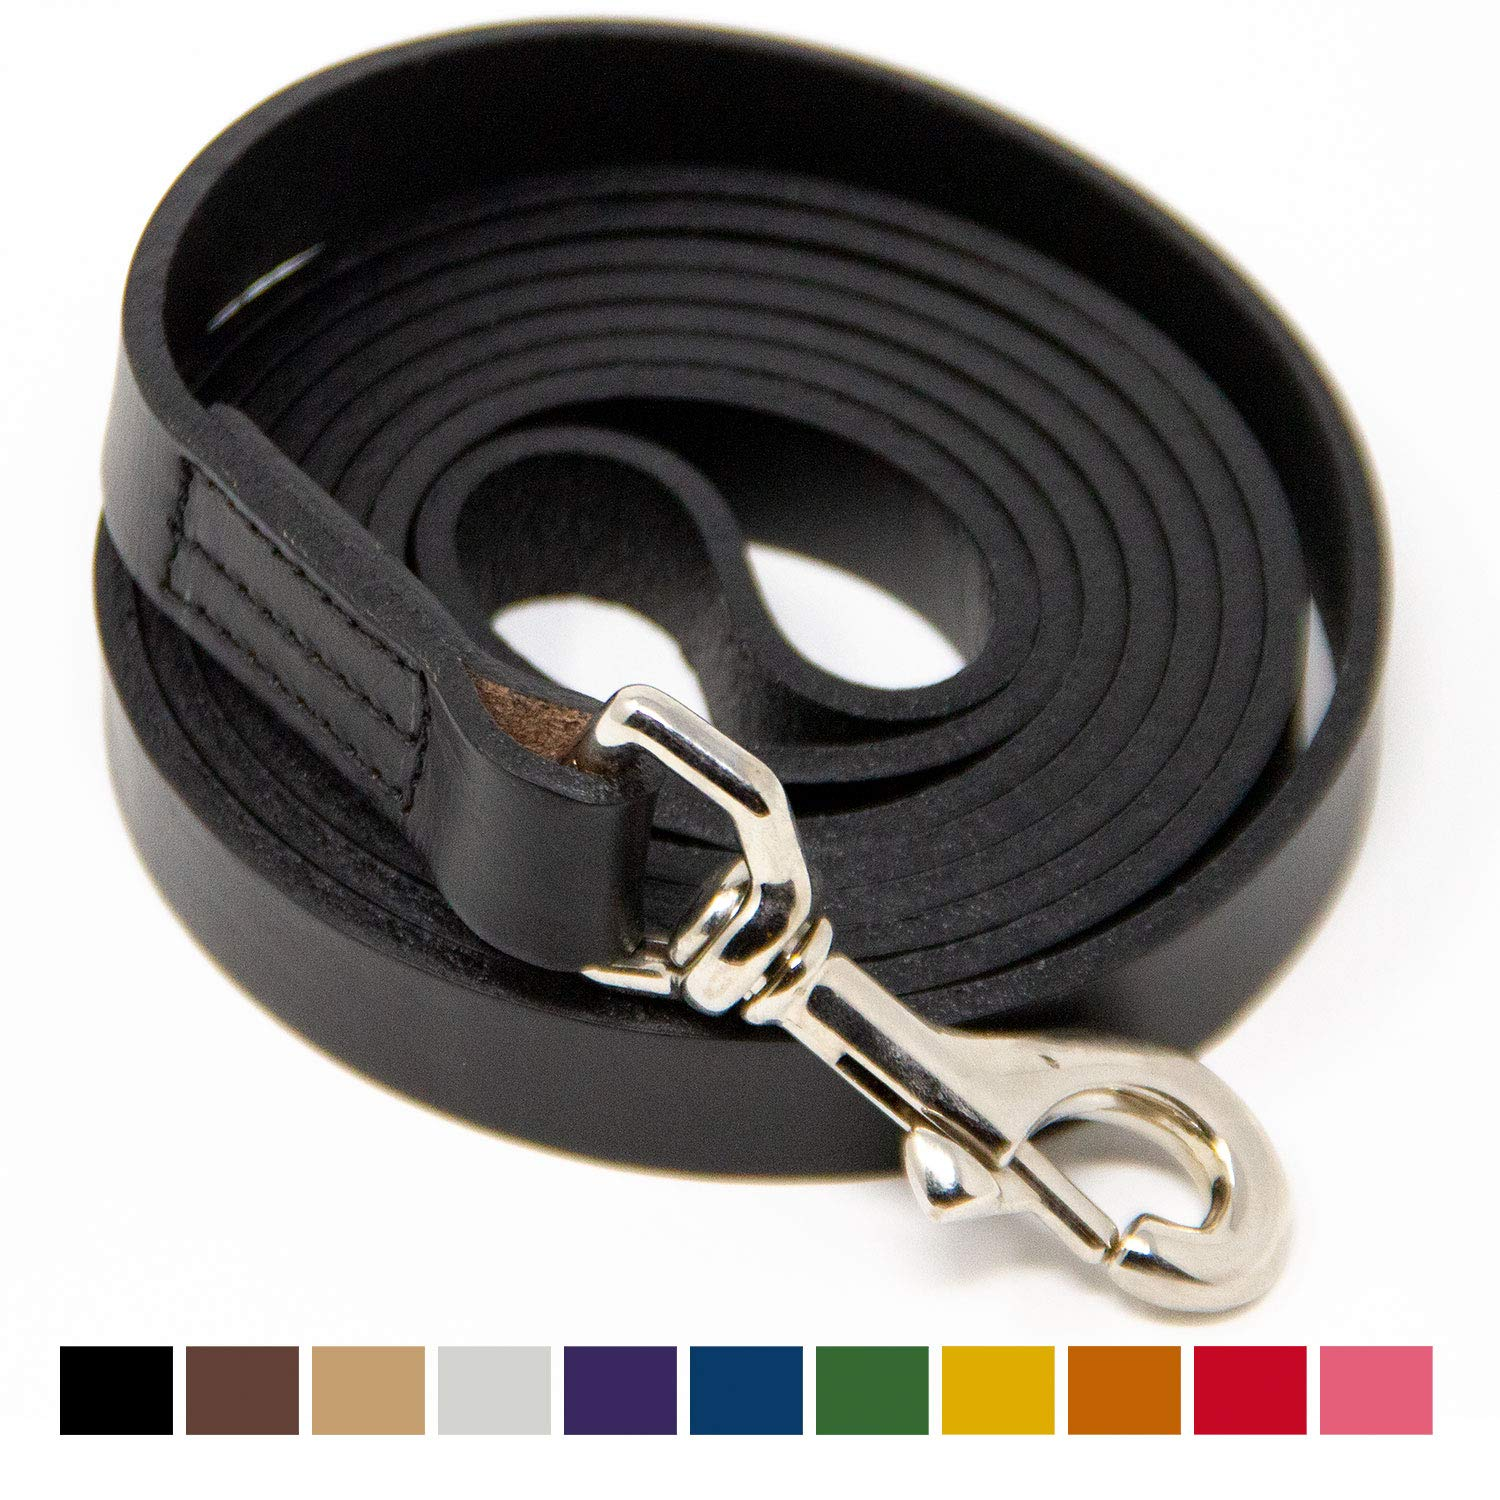 Logical Leather 6 Foot Dog Leash - Best for Training - Water Resistant Heavy Full Grain Leather Lead - Black by Logical Leather